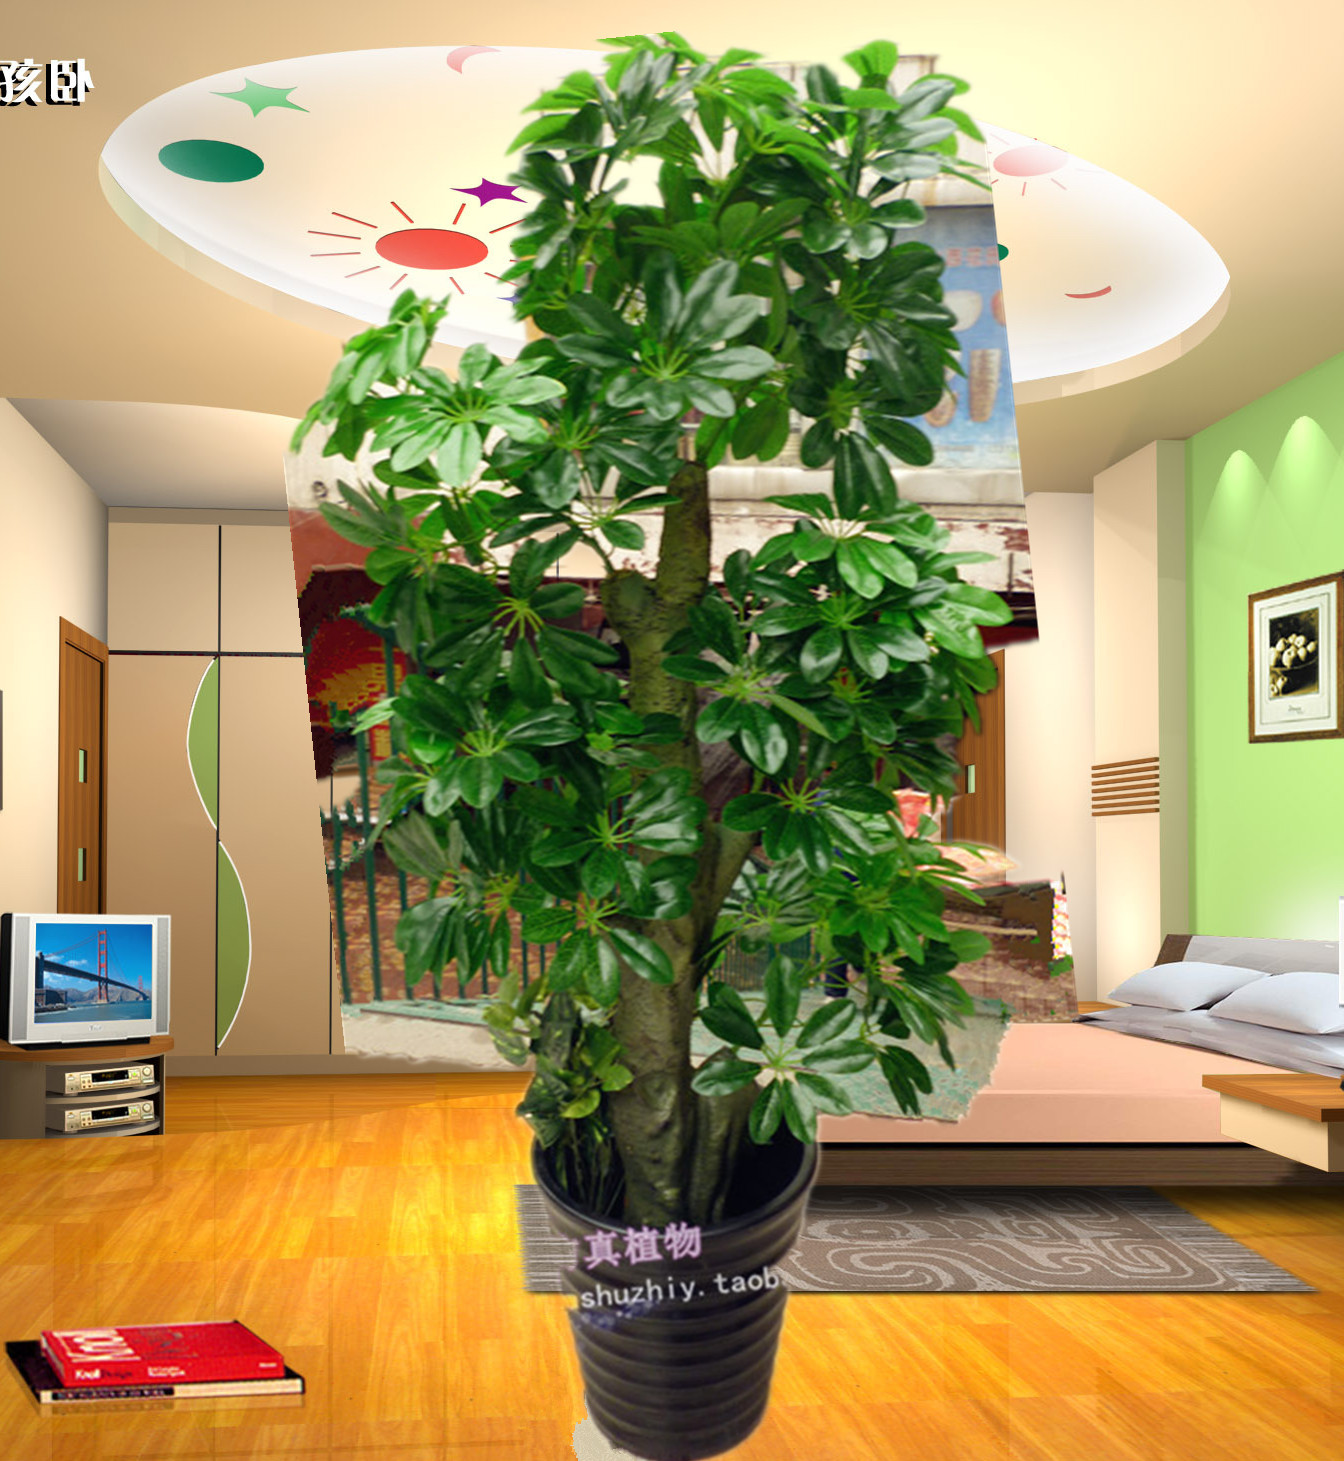 High artificial plants indoor decoration plastic flower for Artificial plants indoor decoration